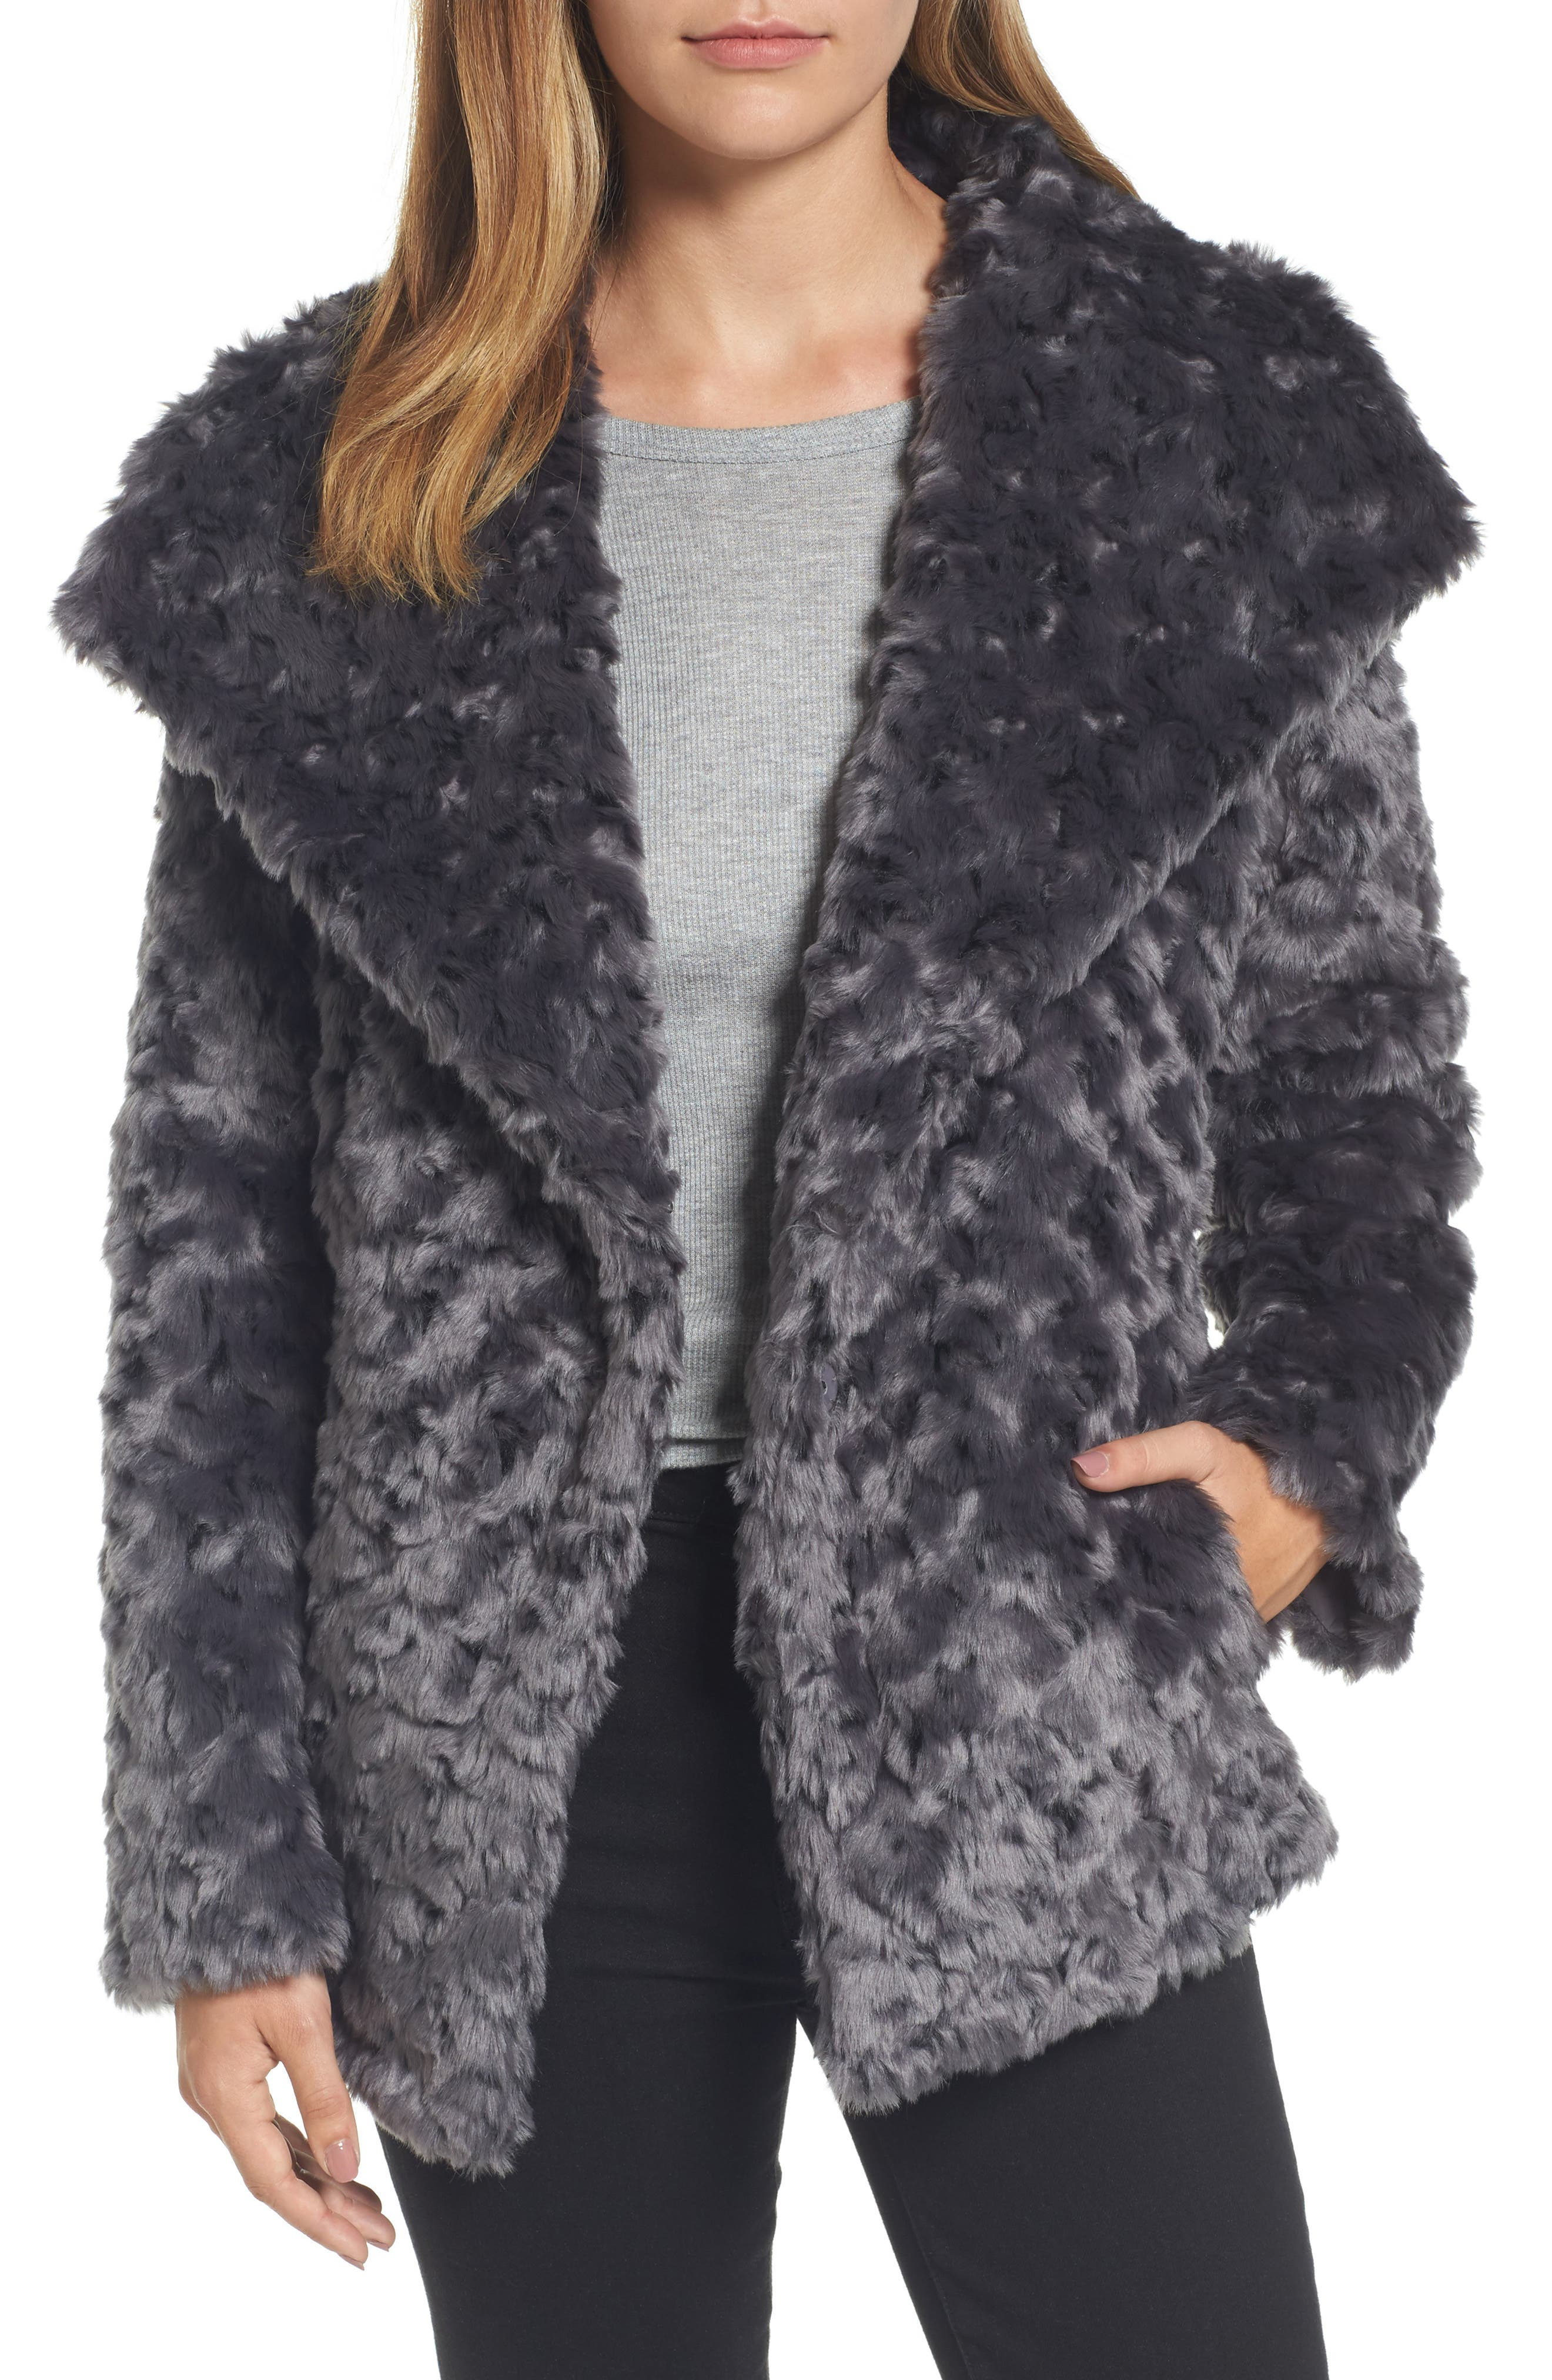 Roslyn Faux Fur Jacket,                             Main thumbnail 1, color,                             French Grey